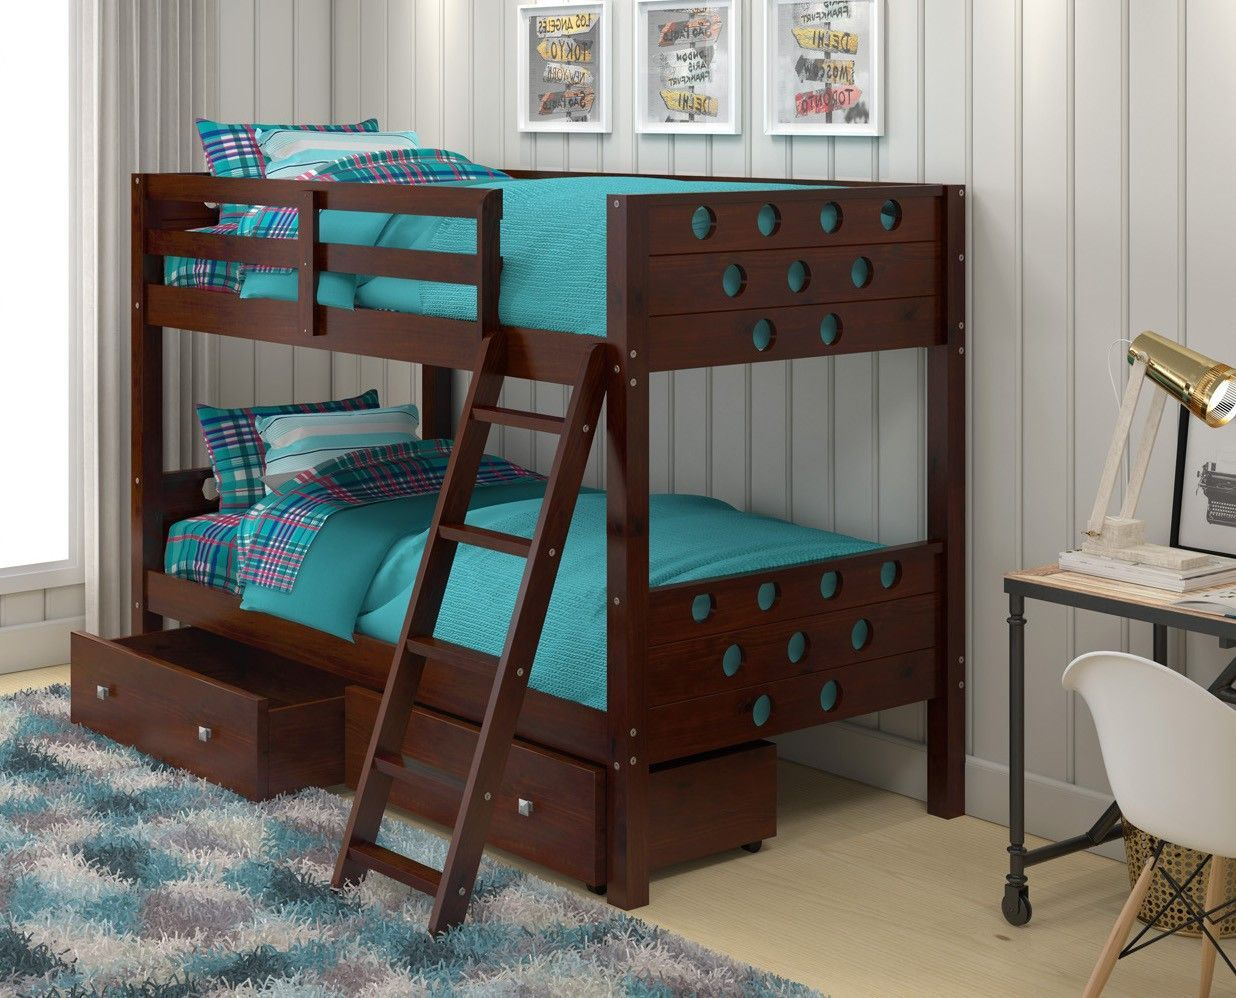 our fun twin over twin circles bunk bed for kids with dual underbed storage drawers efficiently